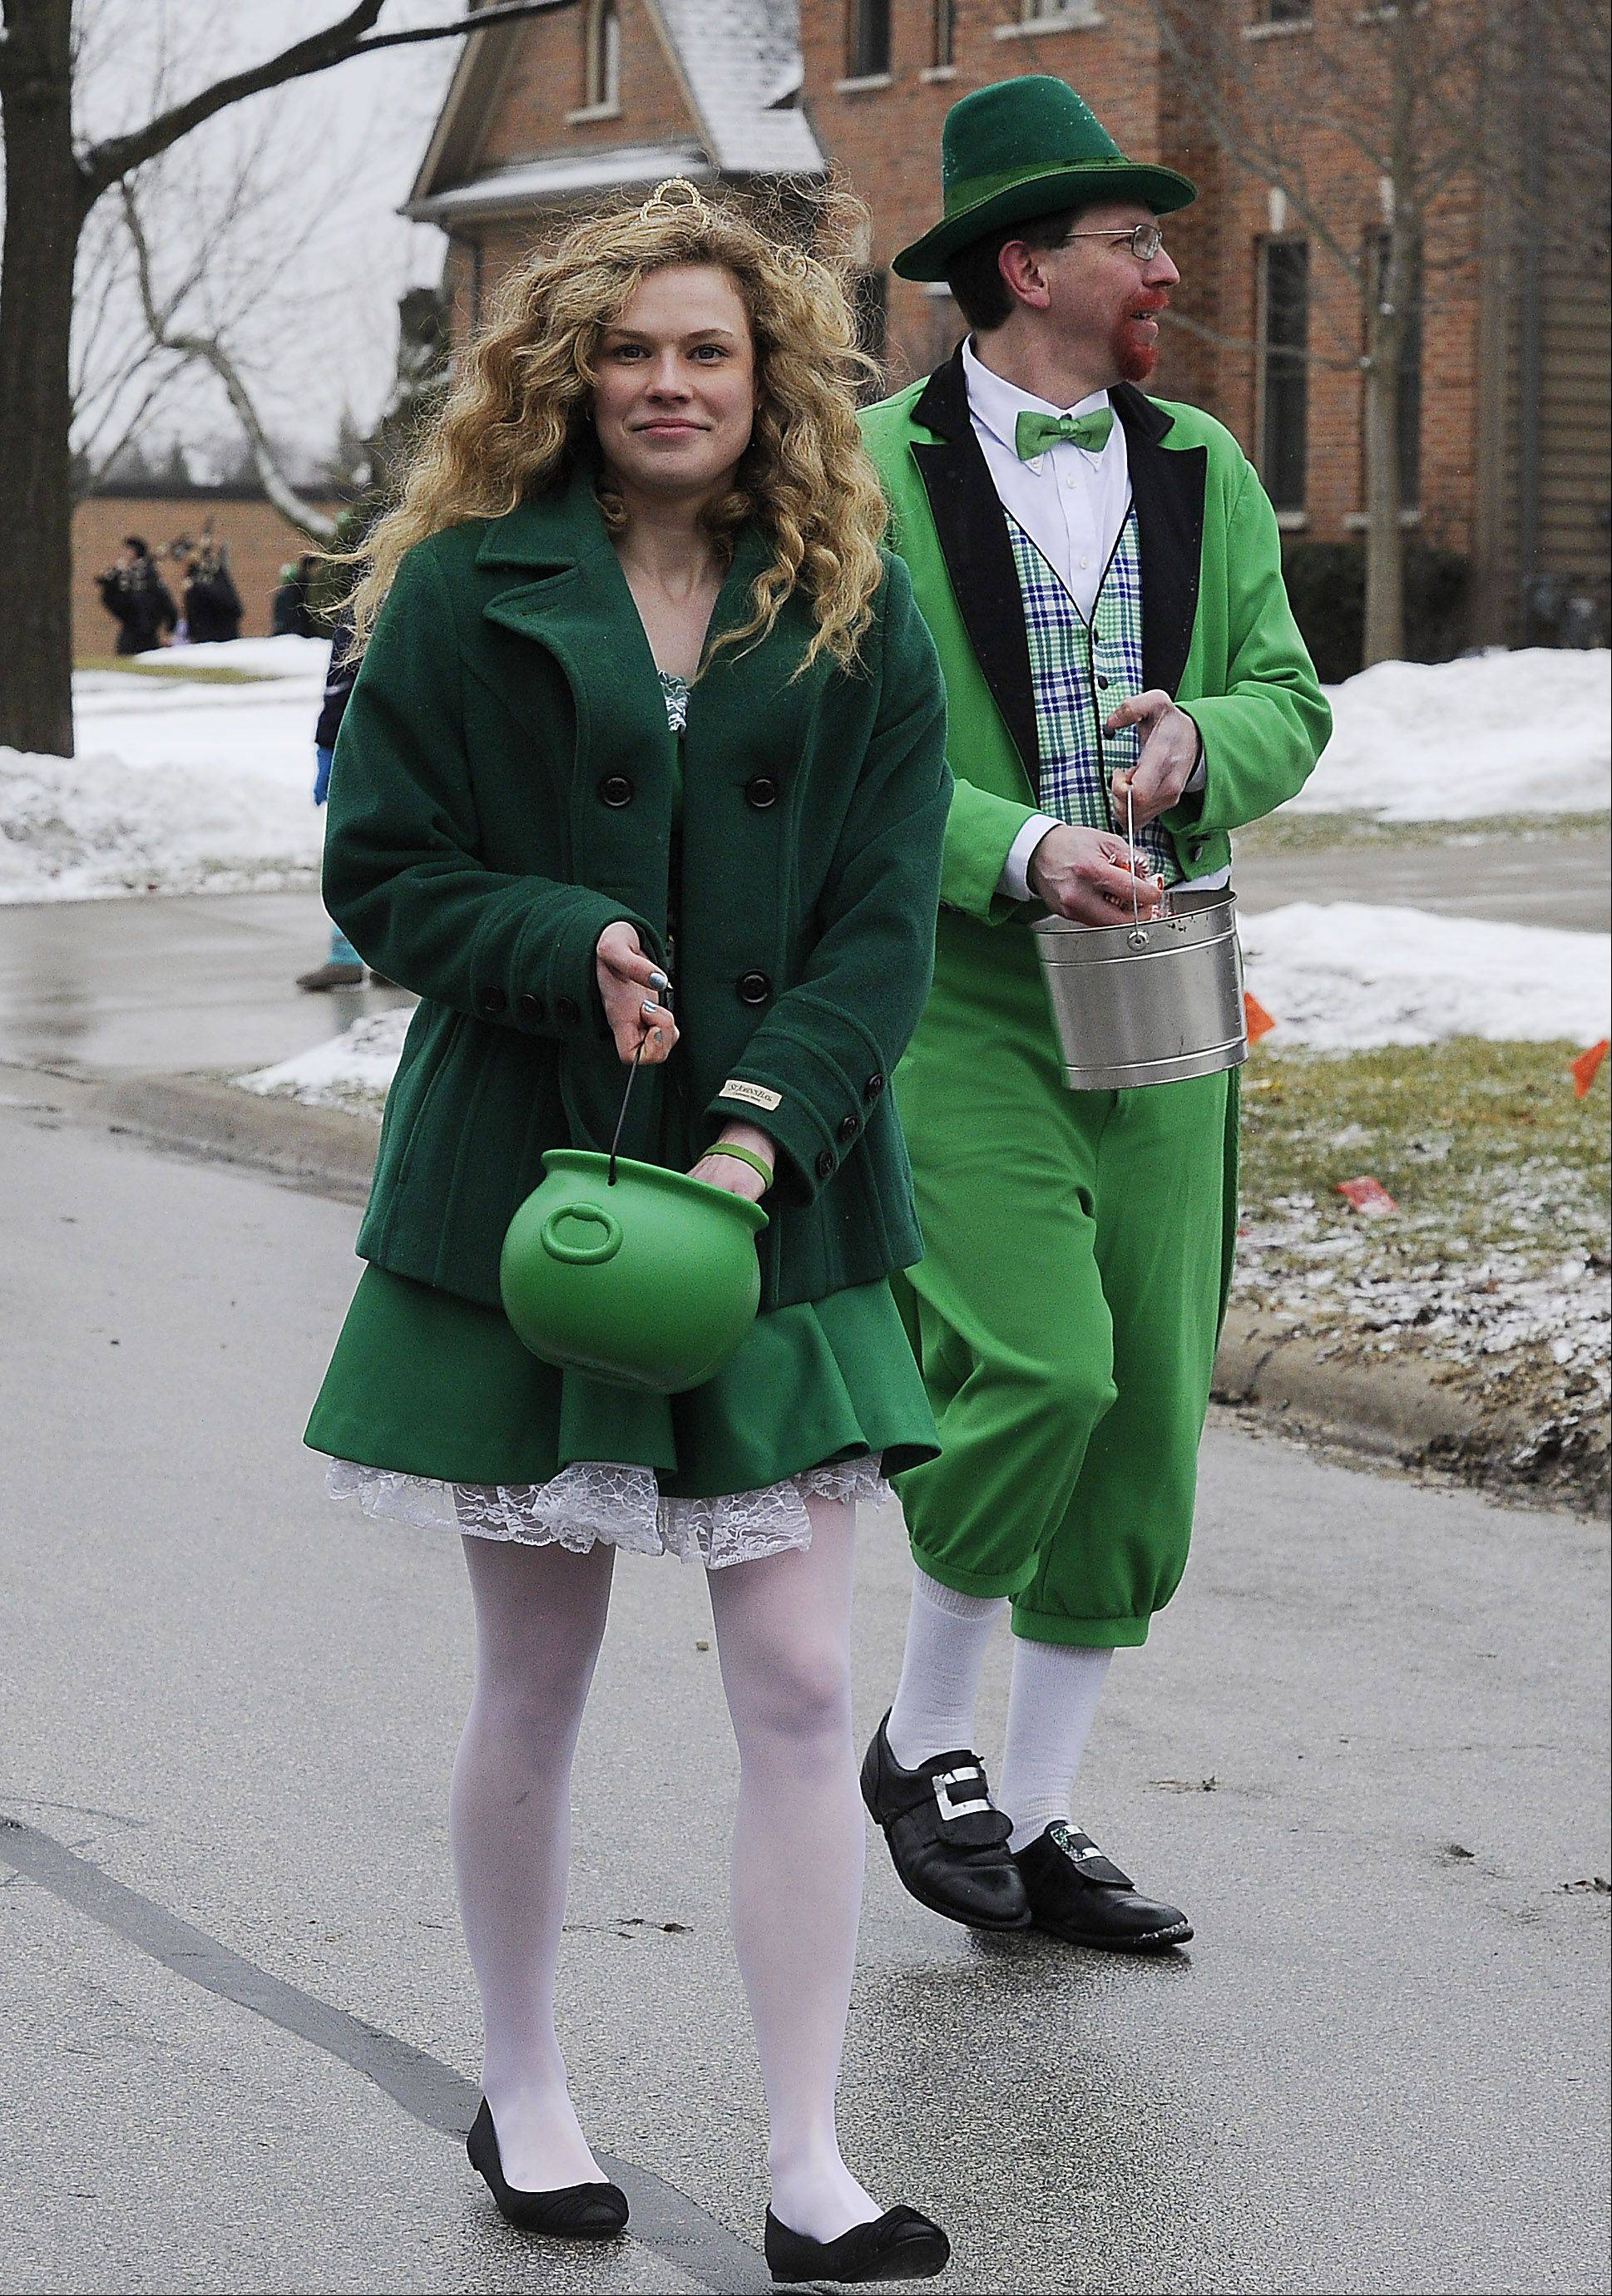 Palatine residents Mary Edgar as Katie M' Lady and Jason Foltyn as Lucky McClover are the grand marshalls at the St. Patrick's Day parade on Saturday.